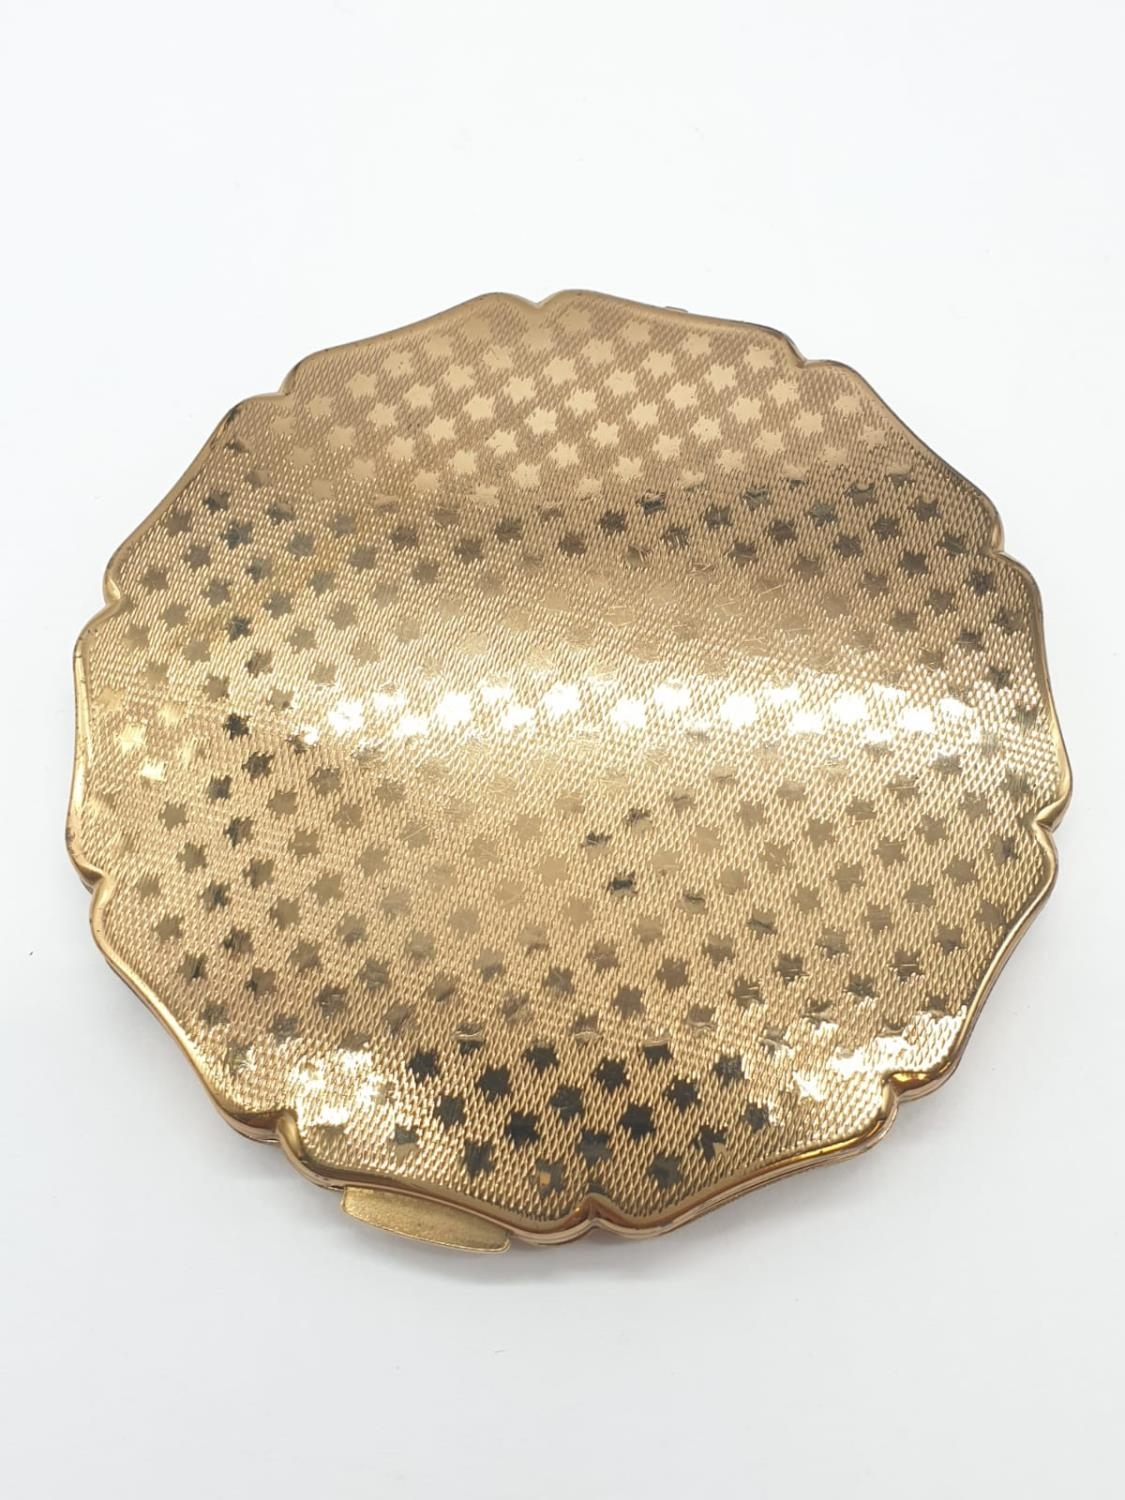 Vintage enamel top Stratton compact (small scratch on top) A.F - Image 6 of 7